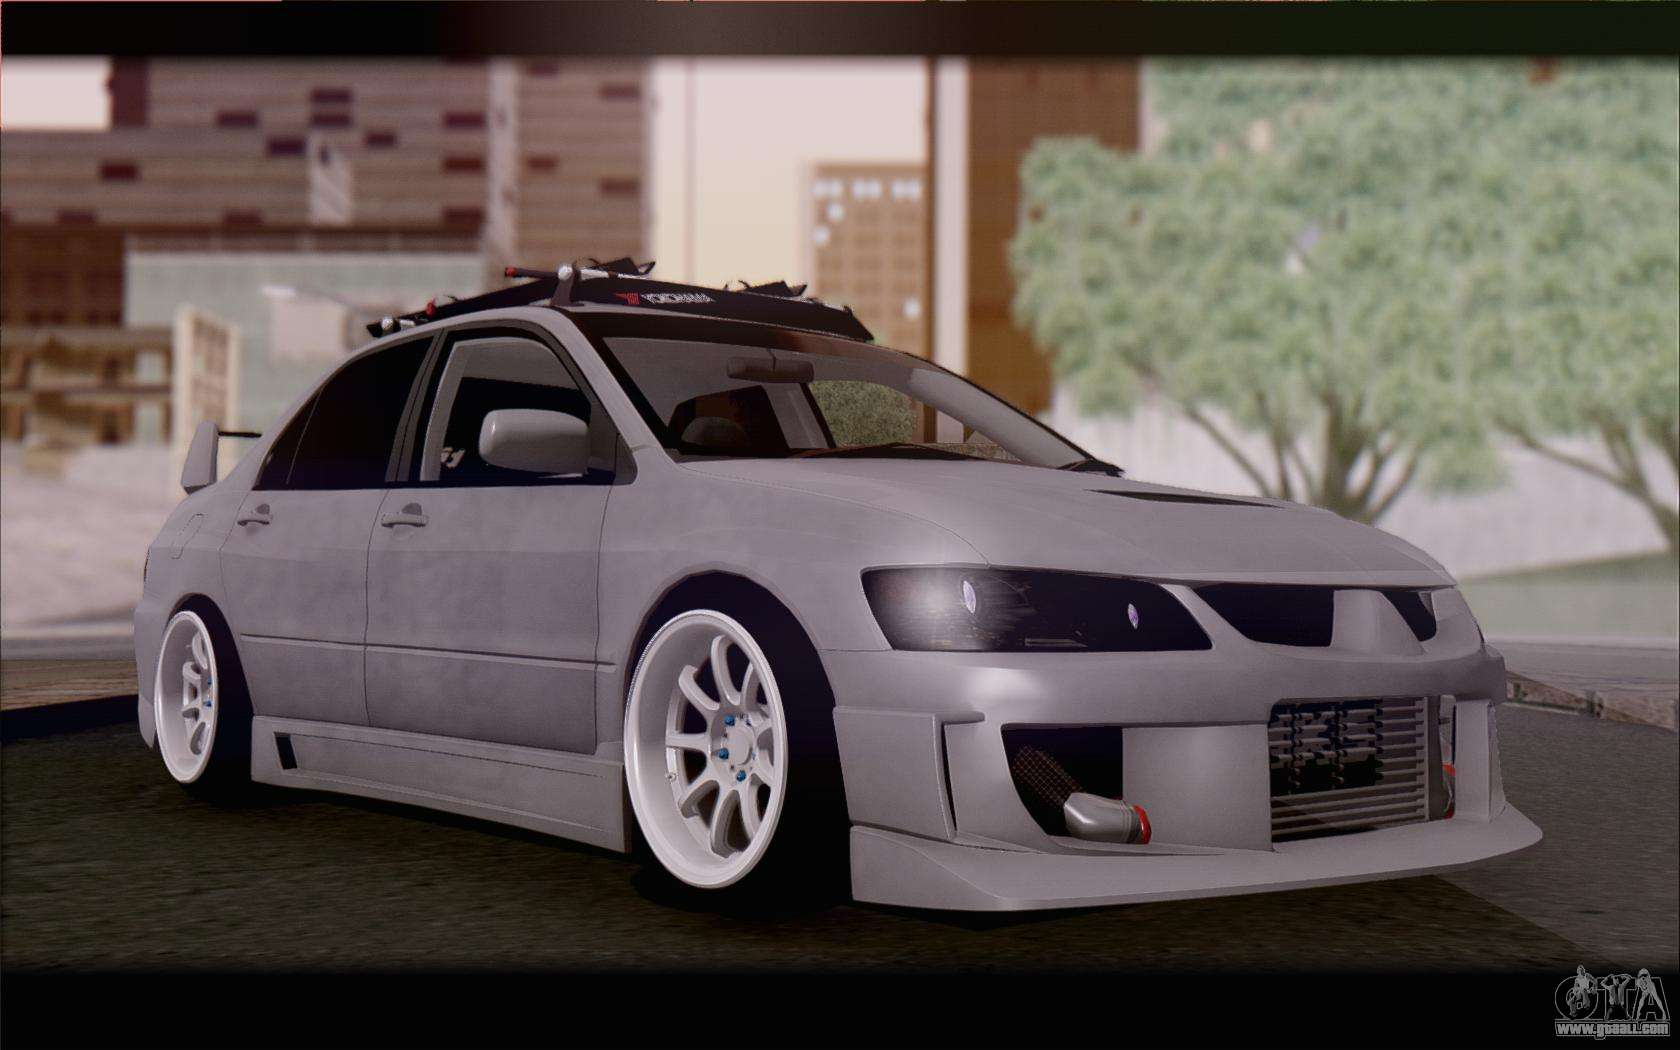 Maxresdefault as well Gtaiv as well Maxresdefault additionally D Official Mercury Gray Pearl Evo X Picture Thread O additionally A Mitsevofinal. on 2014 mitsubishi lancer gsr